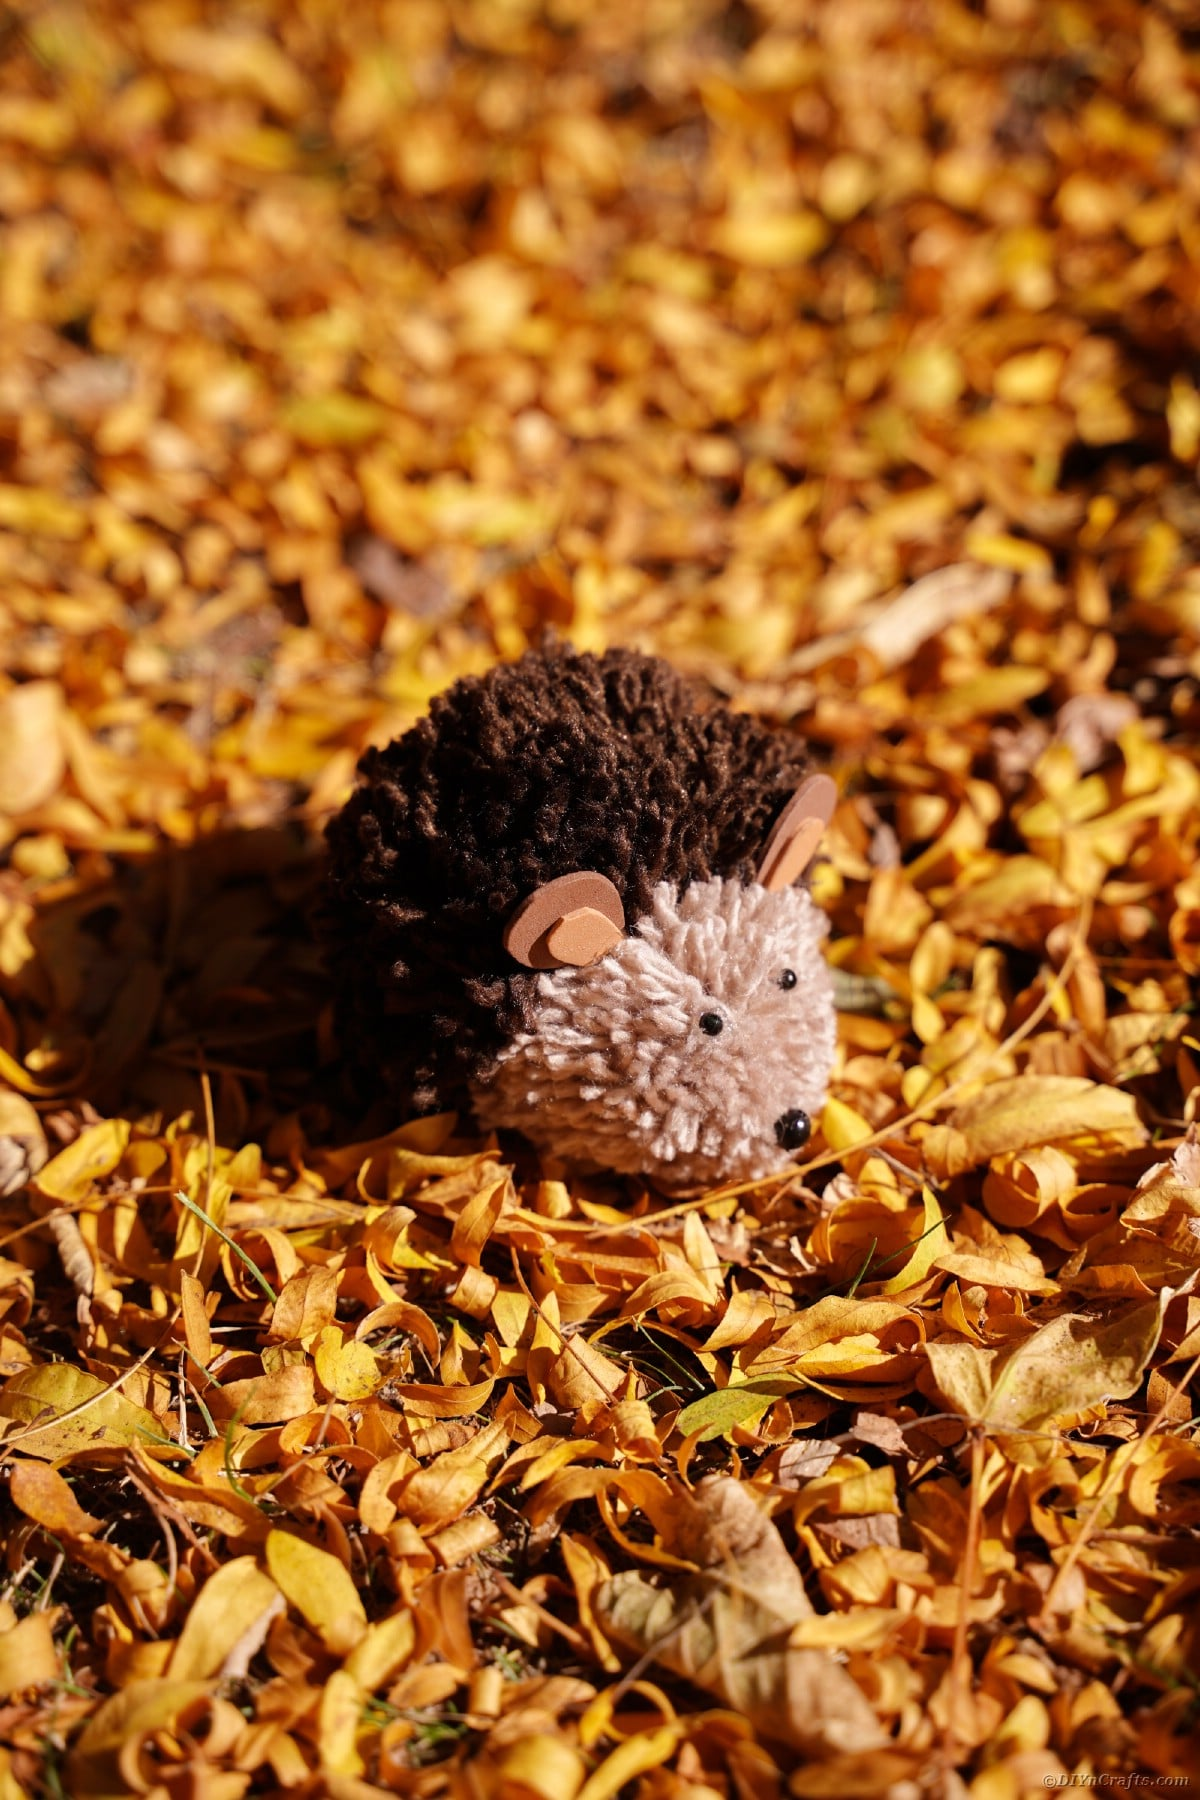 Toy hedgehog on pile of yellow leaves